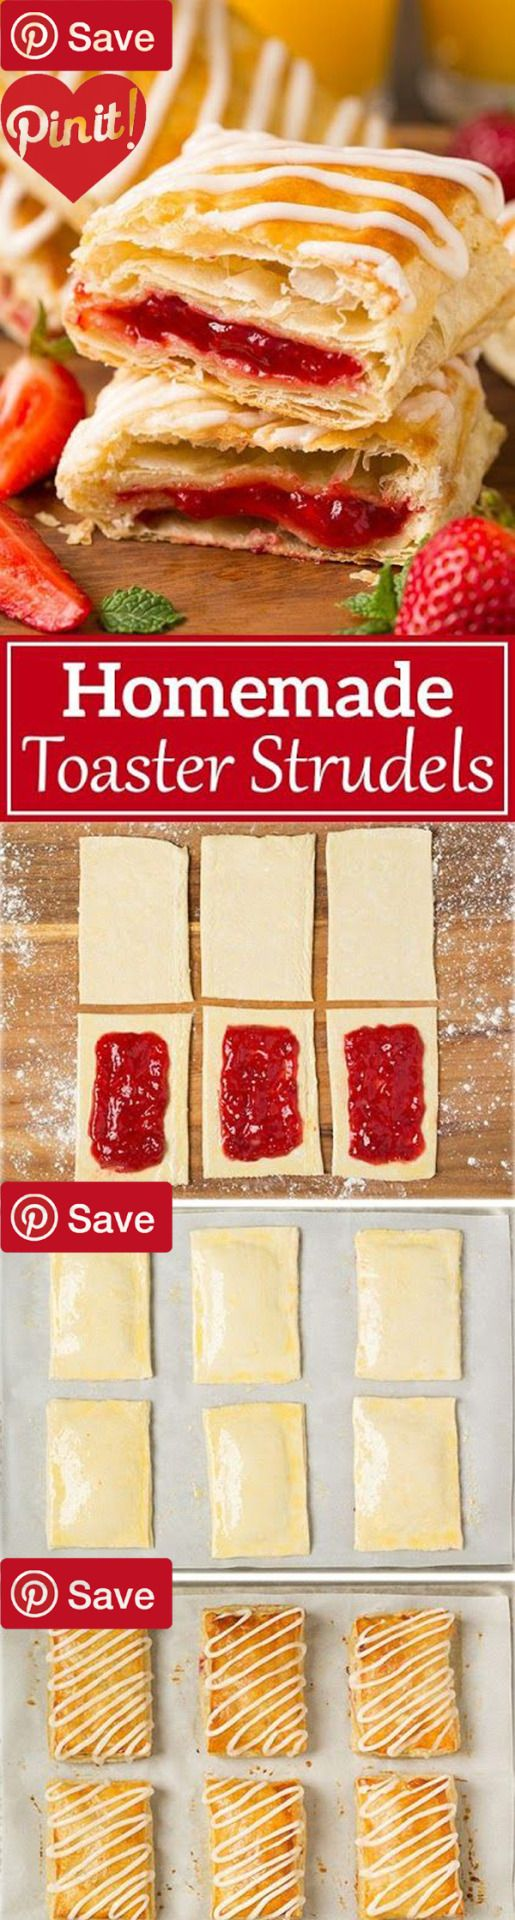 Homemade Toaster Strudels #delicious #diy #Easy #food #love #recipe #recipes #tutorial #yummy @mabarto - Make sure to follow cause we post alot of food recipes and DIY we post Food and drinks gifts animals and pets and sometimes art and of course Diy and crafts films music garden hair and beauty and make up health and fitness and yes we do post women's fashion sometimes and even wedding ideas travel and sport science and nature products and photography outdoors and indoors men's fashion too…